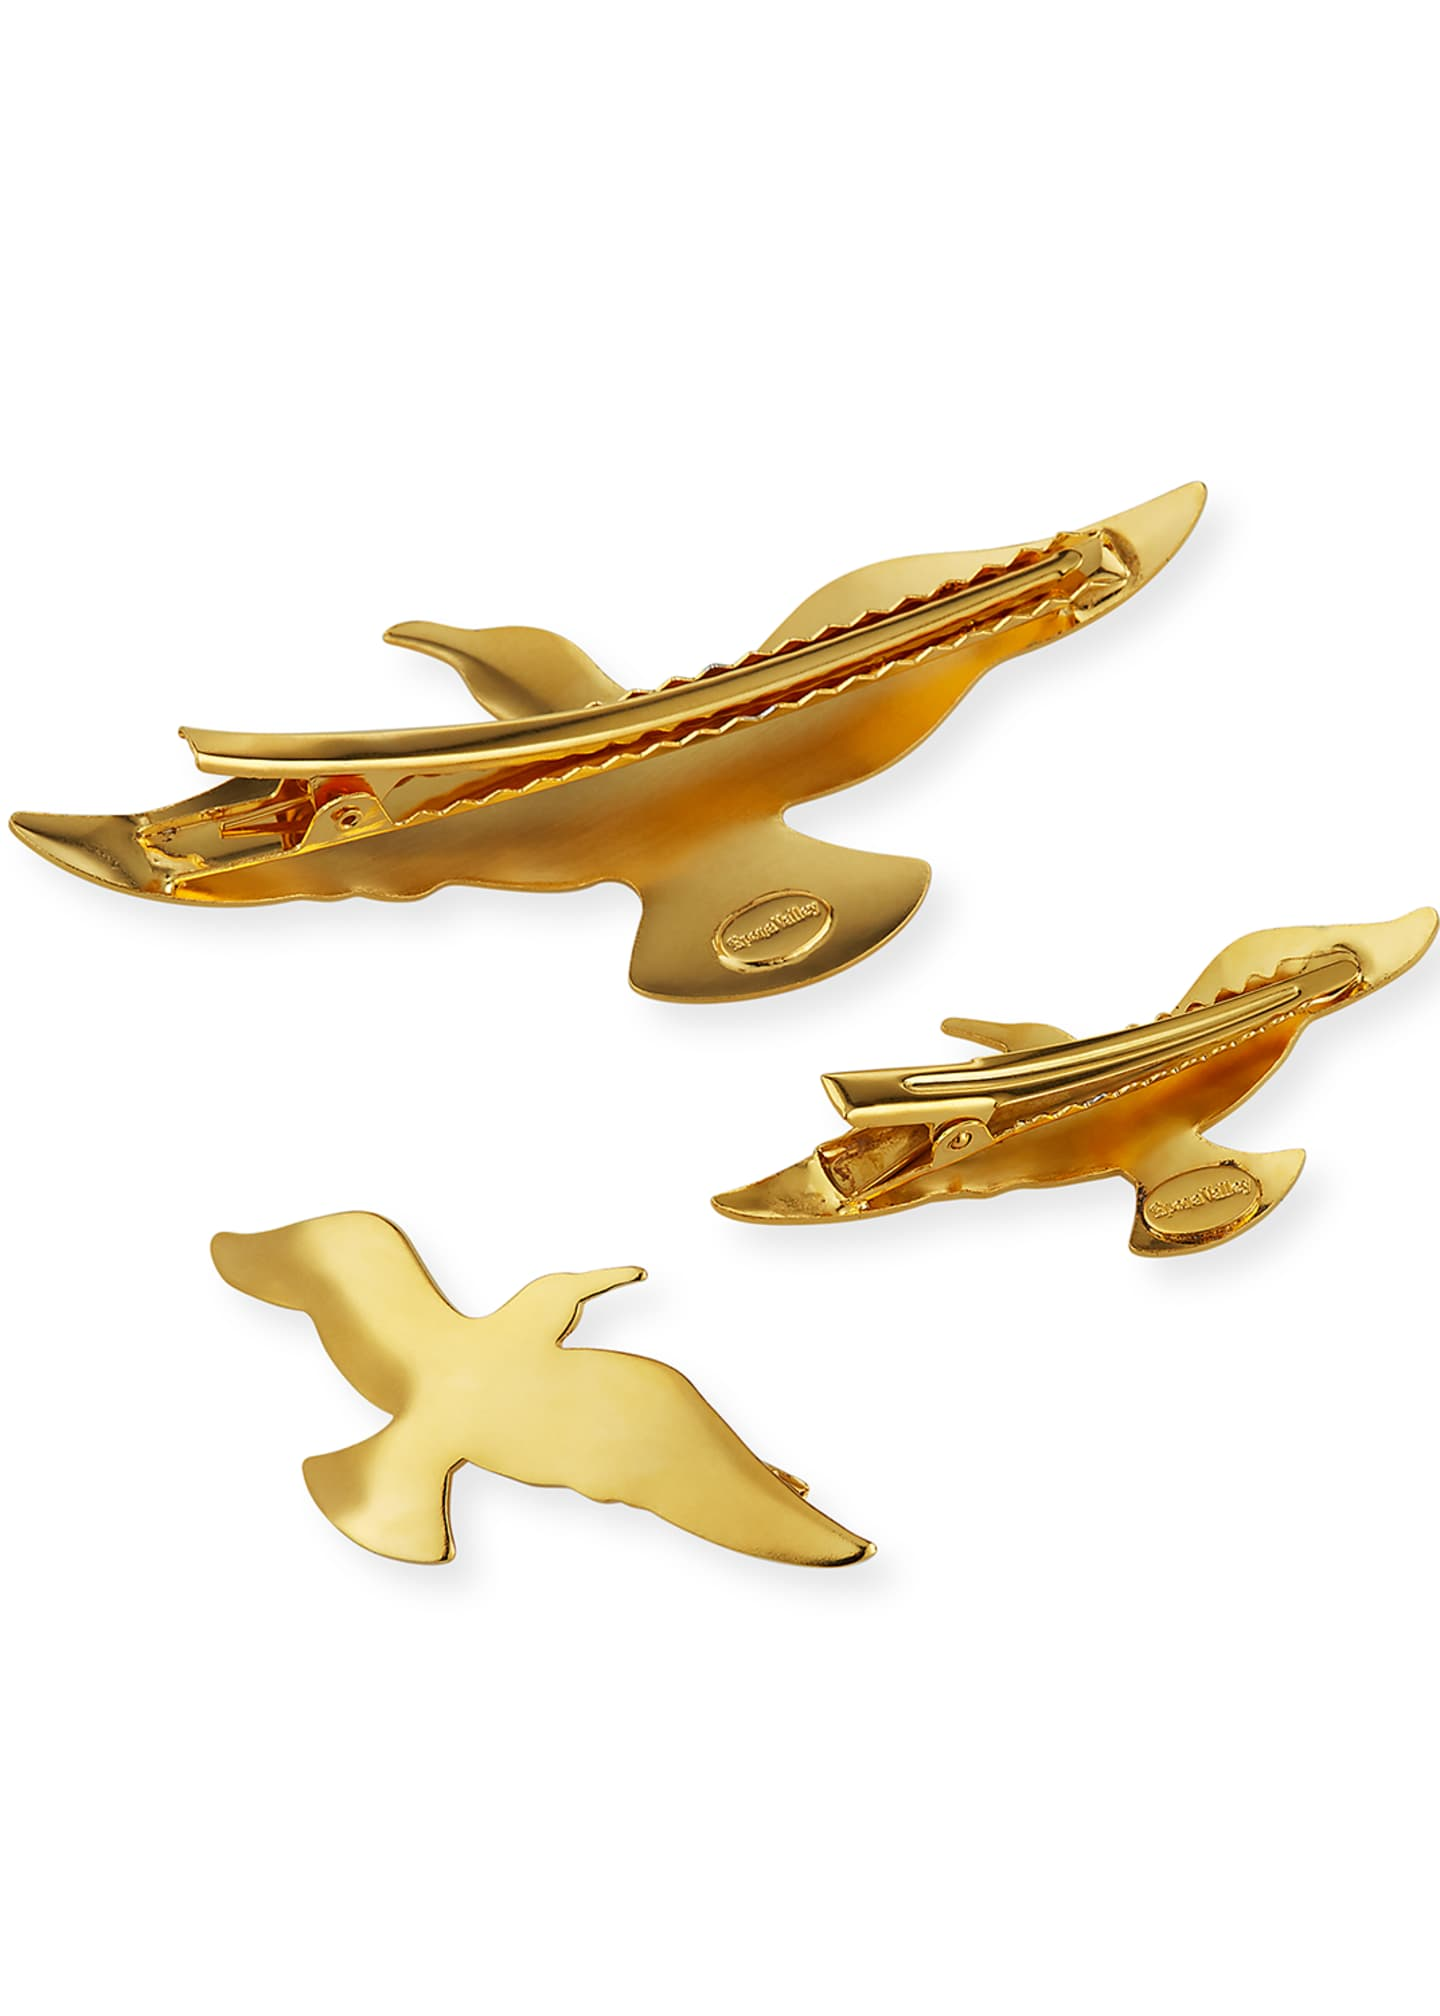 Image 3 of 3: 14K Gold Plated Bird Hair Clips, Set of 3